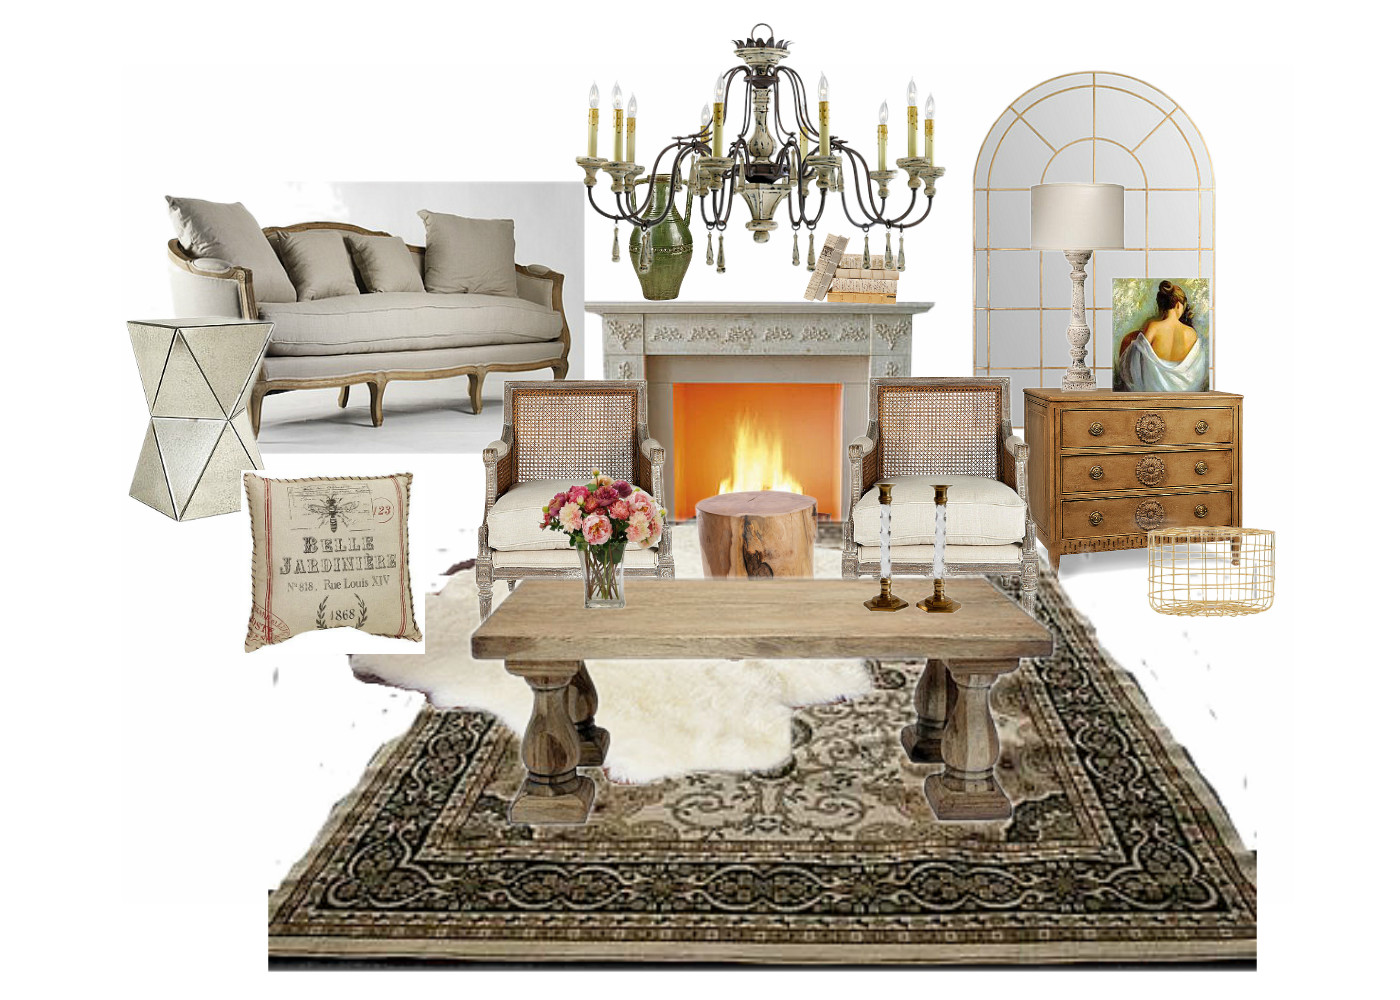 French glam living room seeking lavendar lane for French chic living room